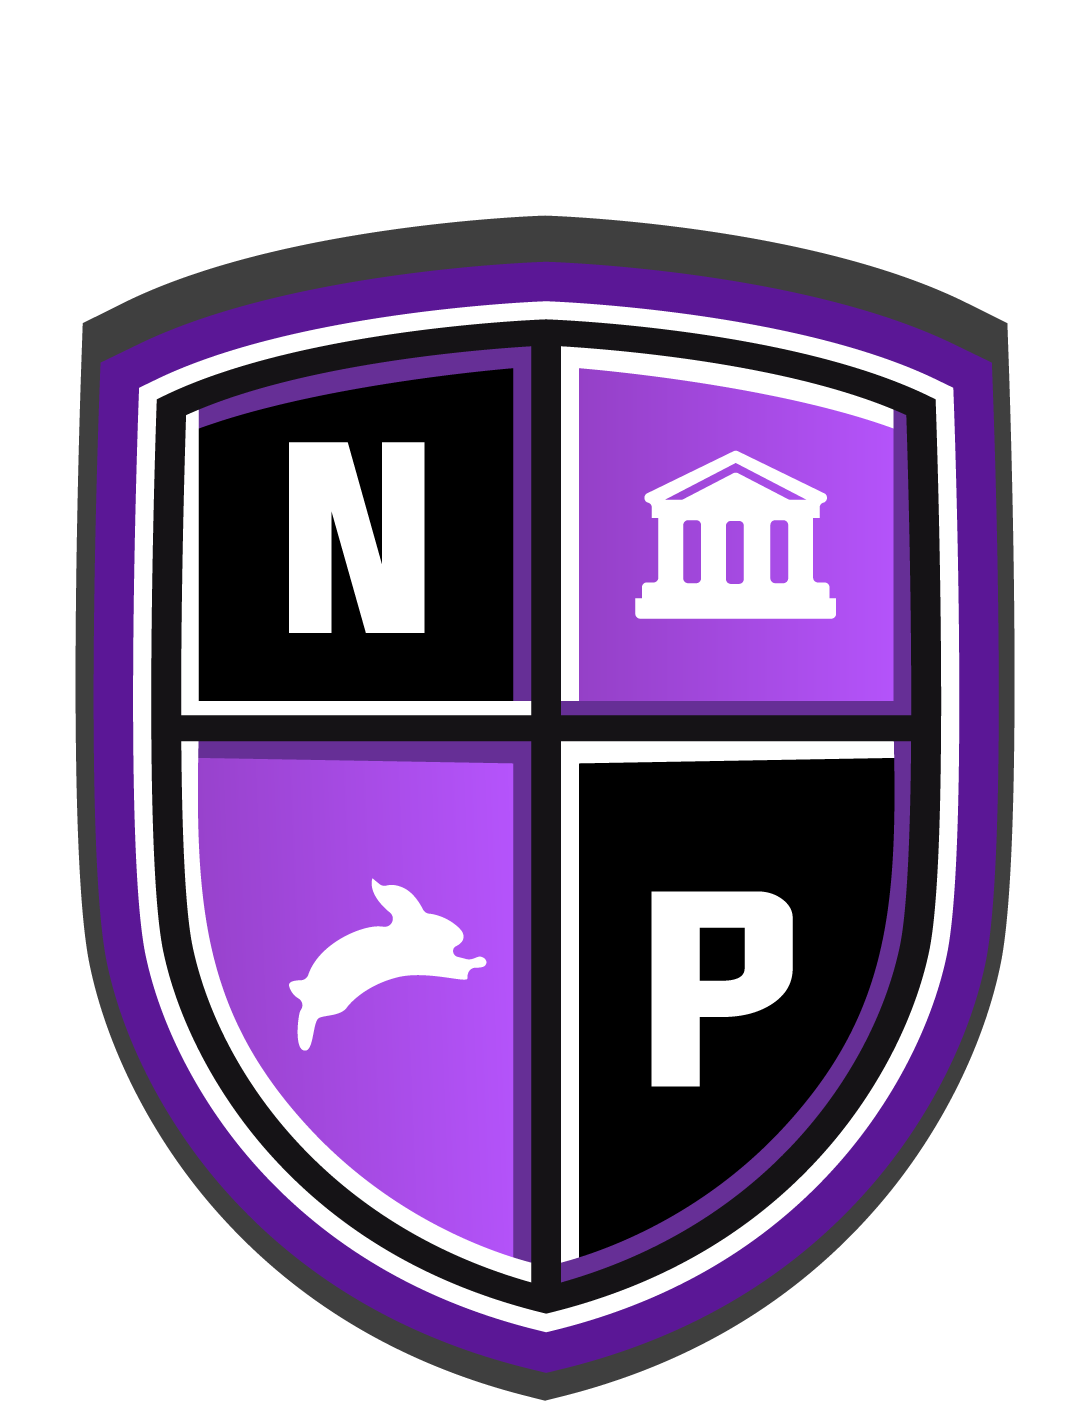 The North Point Academy Shield